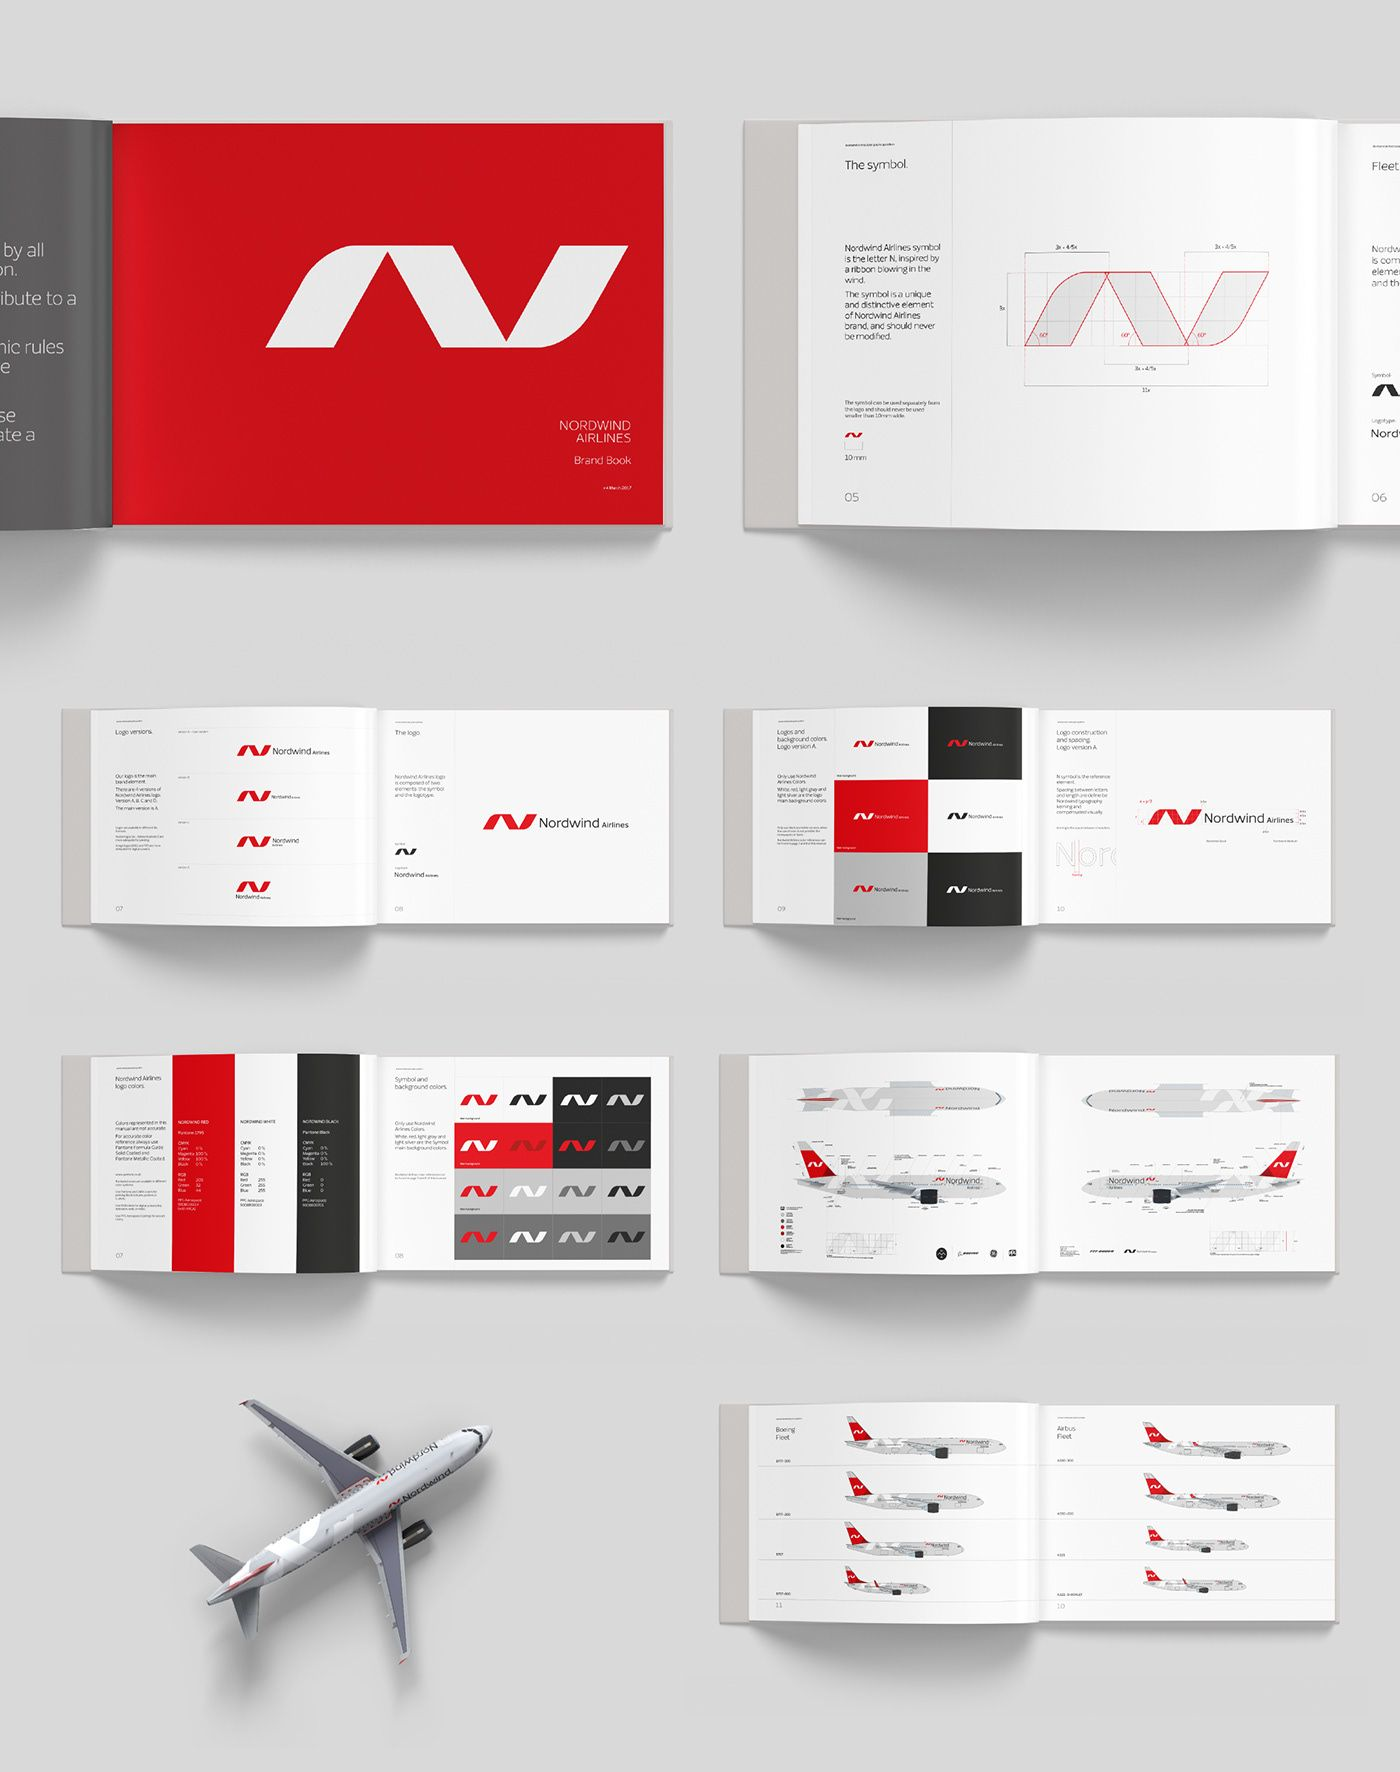 Nordwind Airlines Rebrand On Behance Airlines Branding Rebranding Corporate Design